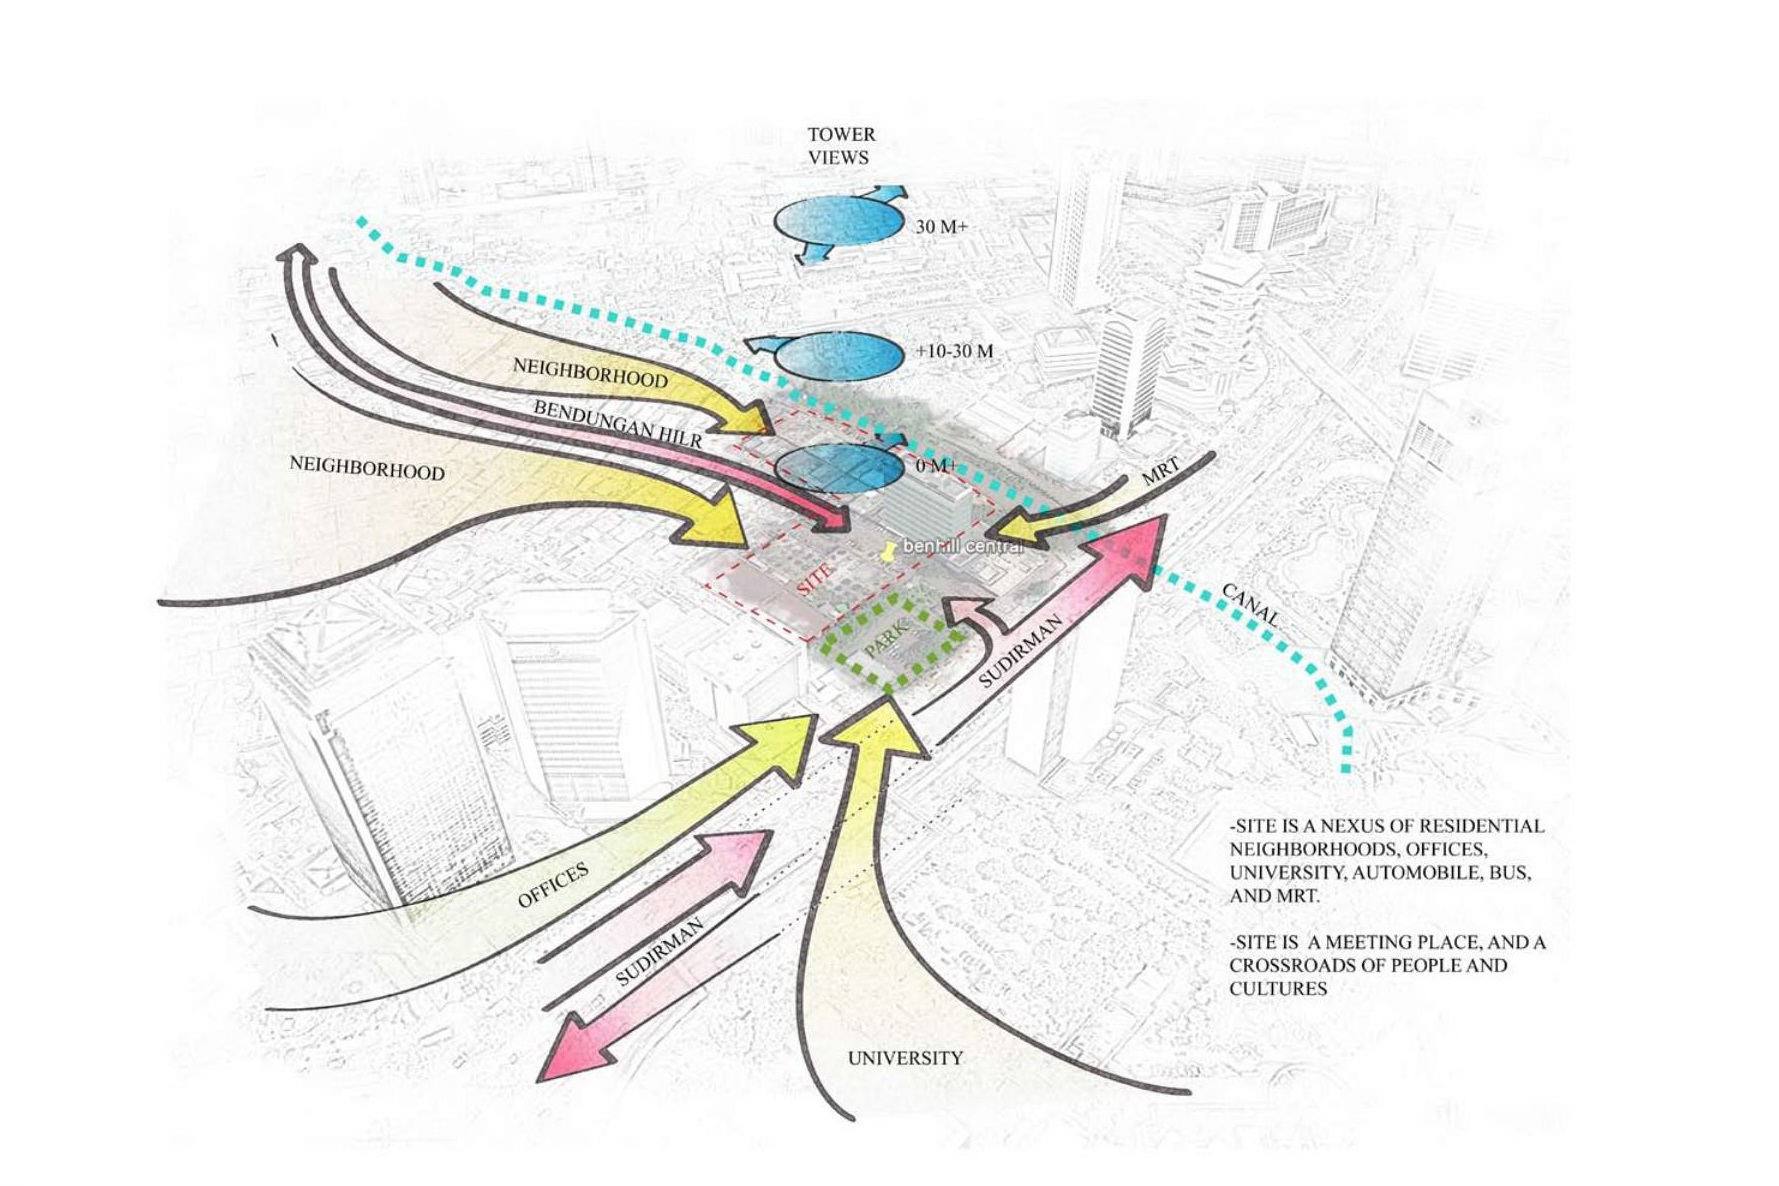 A site diagram showing the constraints and opportunities of the surroundings.